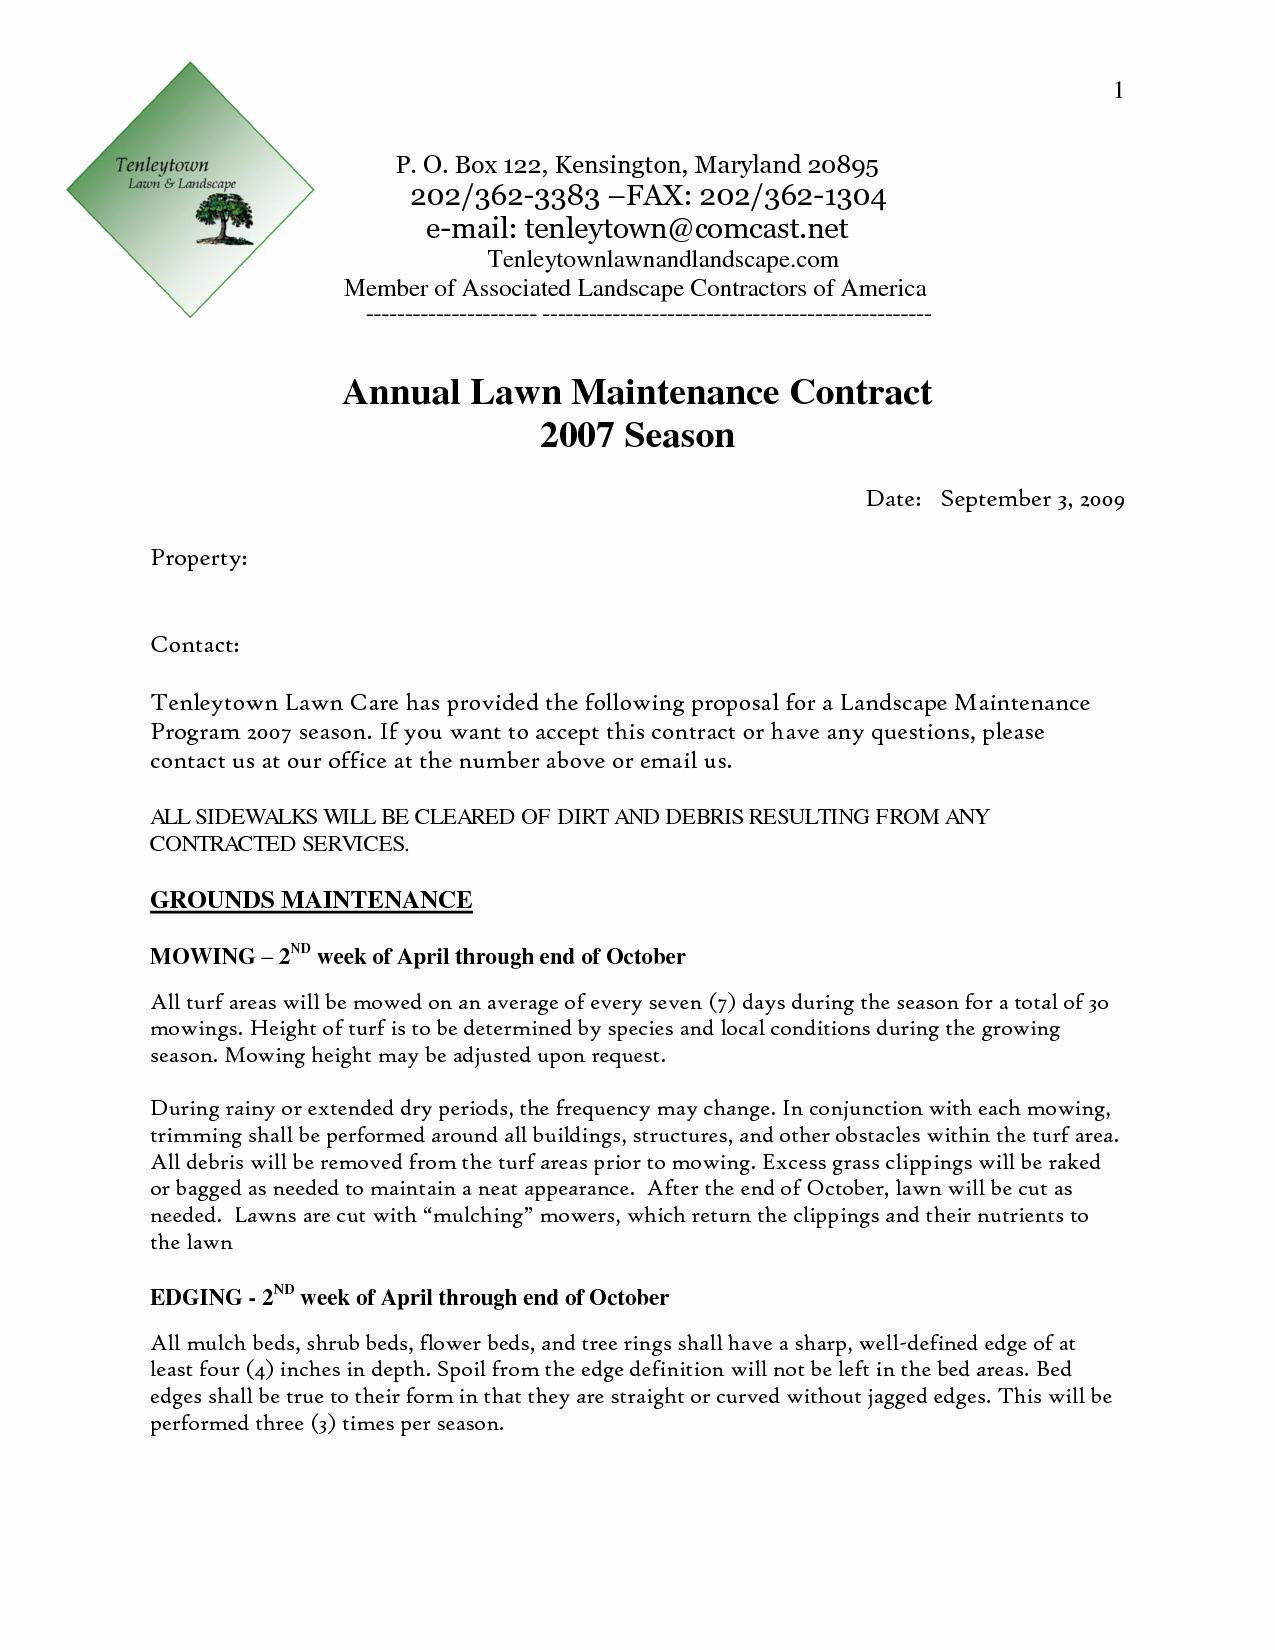 Lawn Service Proposal Template Free Best Of Landscape Proposal Template Word